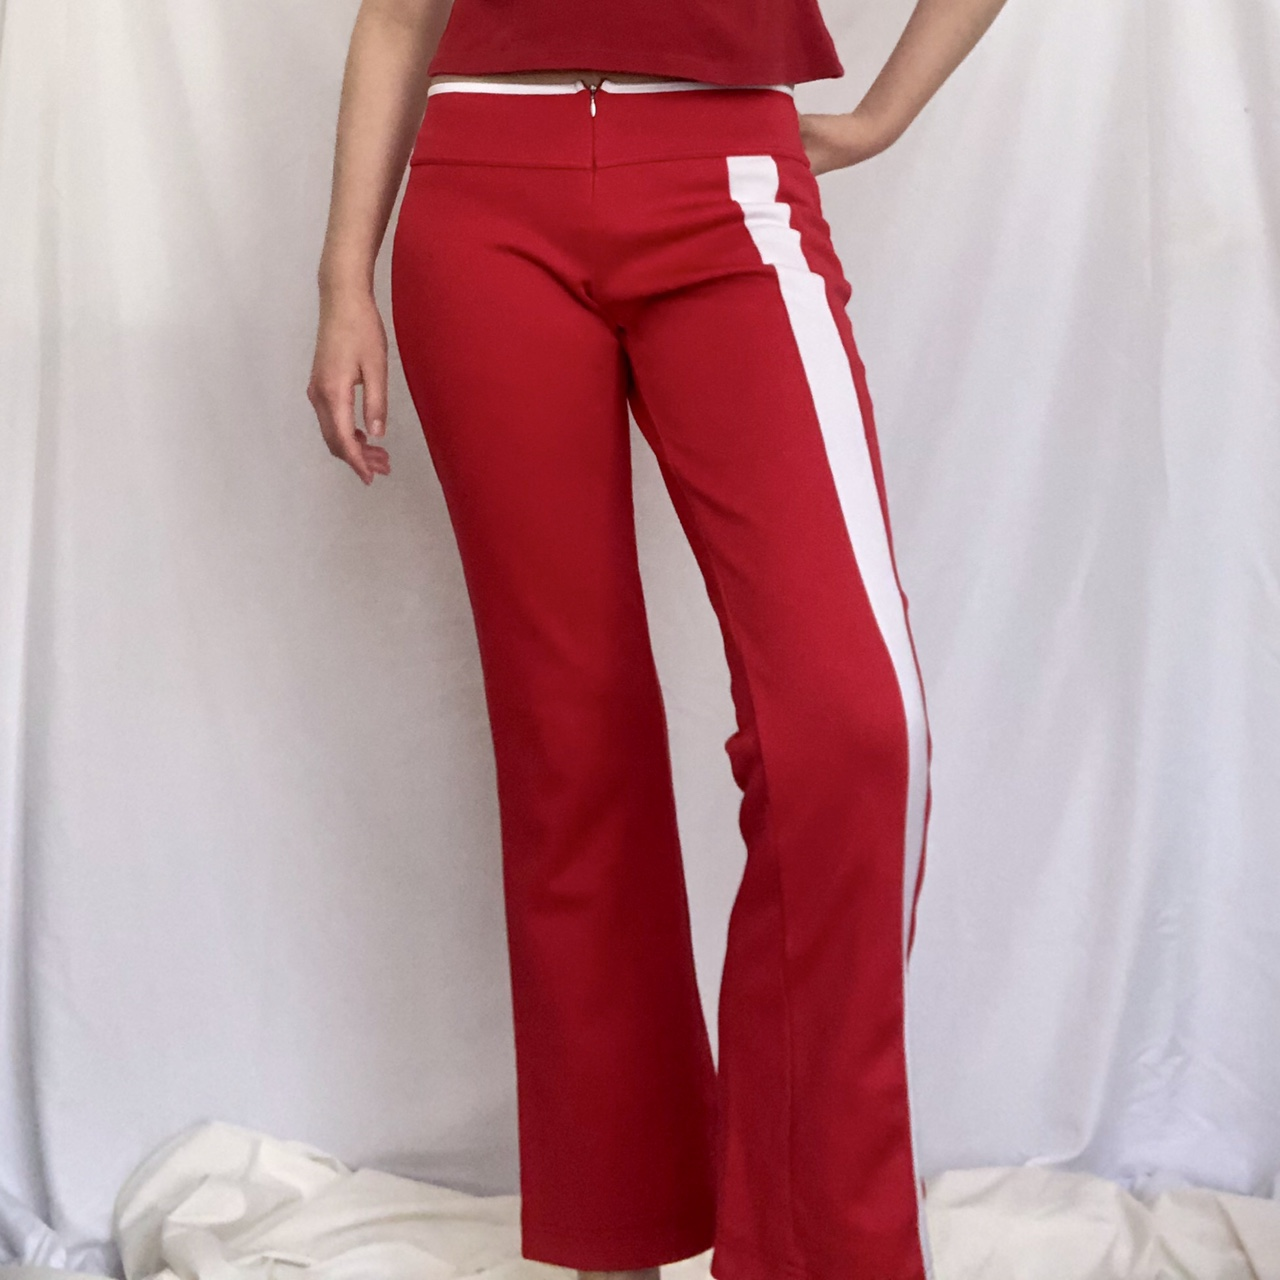 Nike red low-rise track pants with white stripe detail